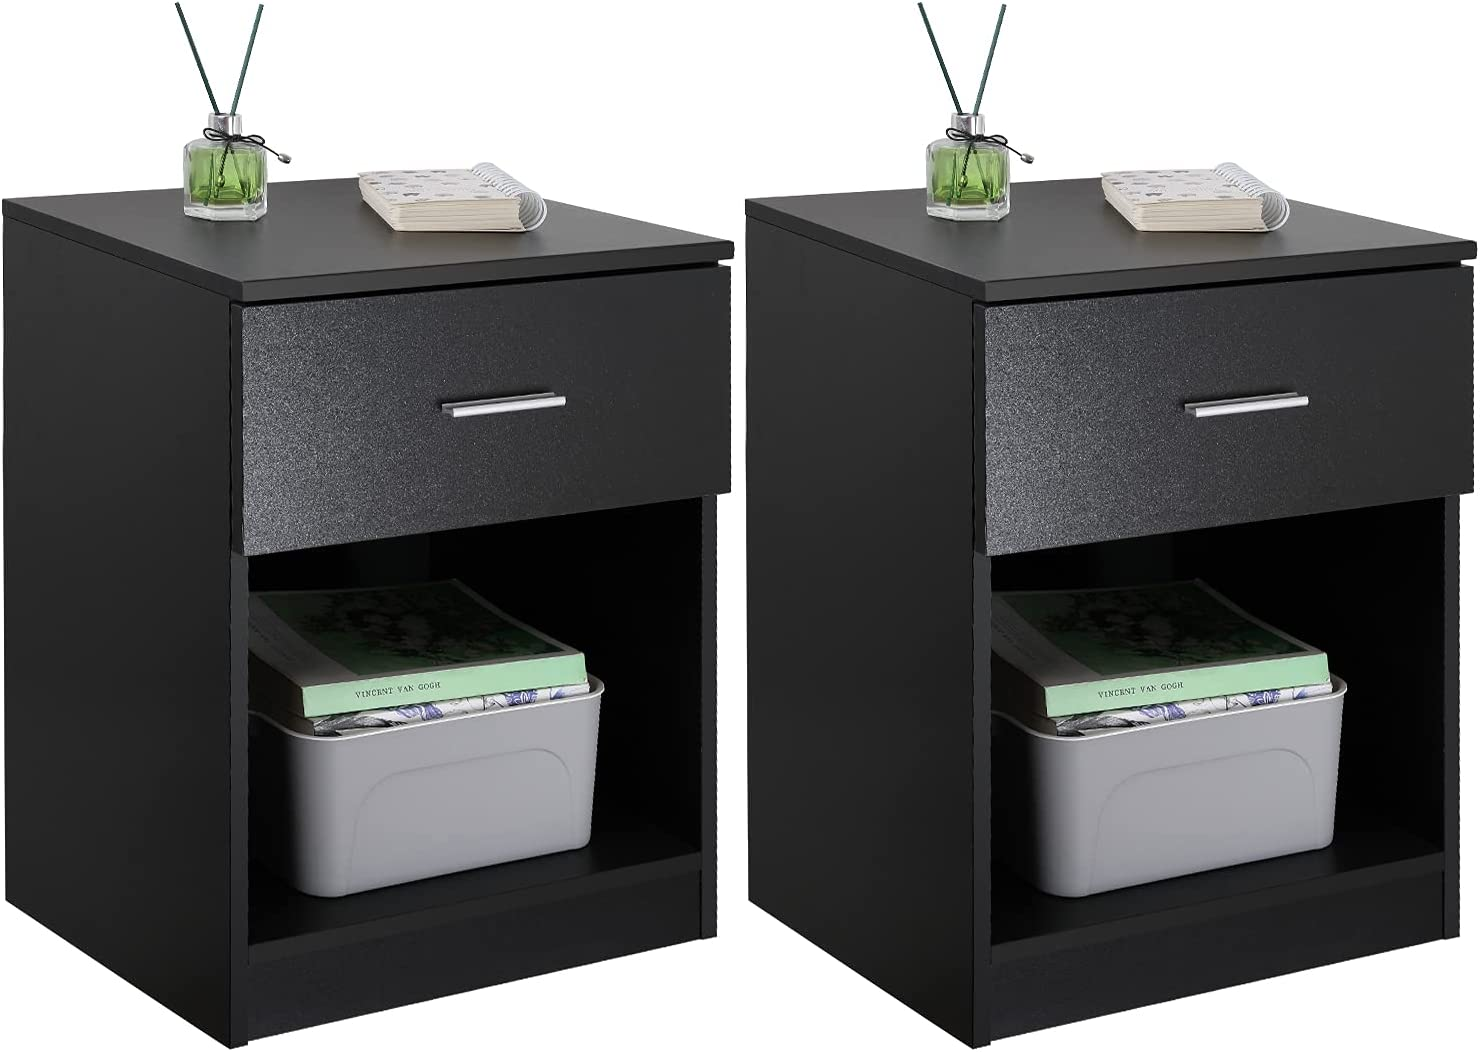 Goldoro Nightstand Set Ultra-Cheap Deals Cheap mail order sales of 2 Wooden Drawer Stylish with End Table